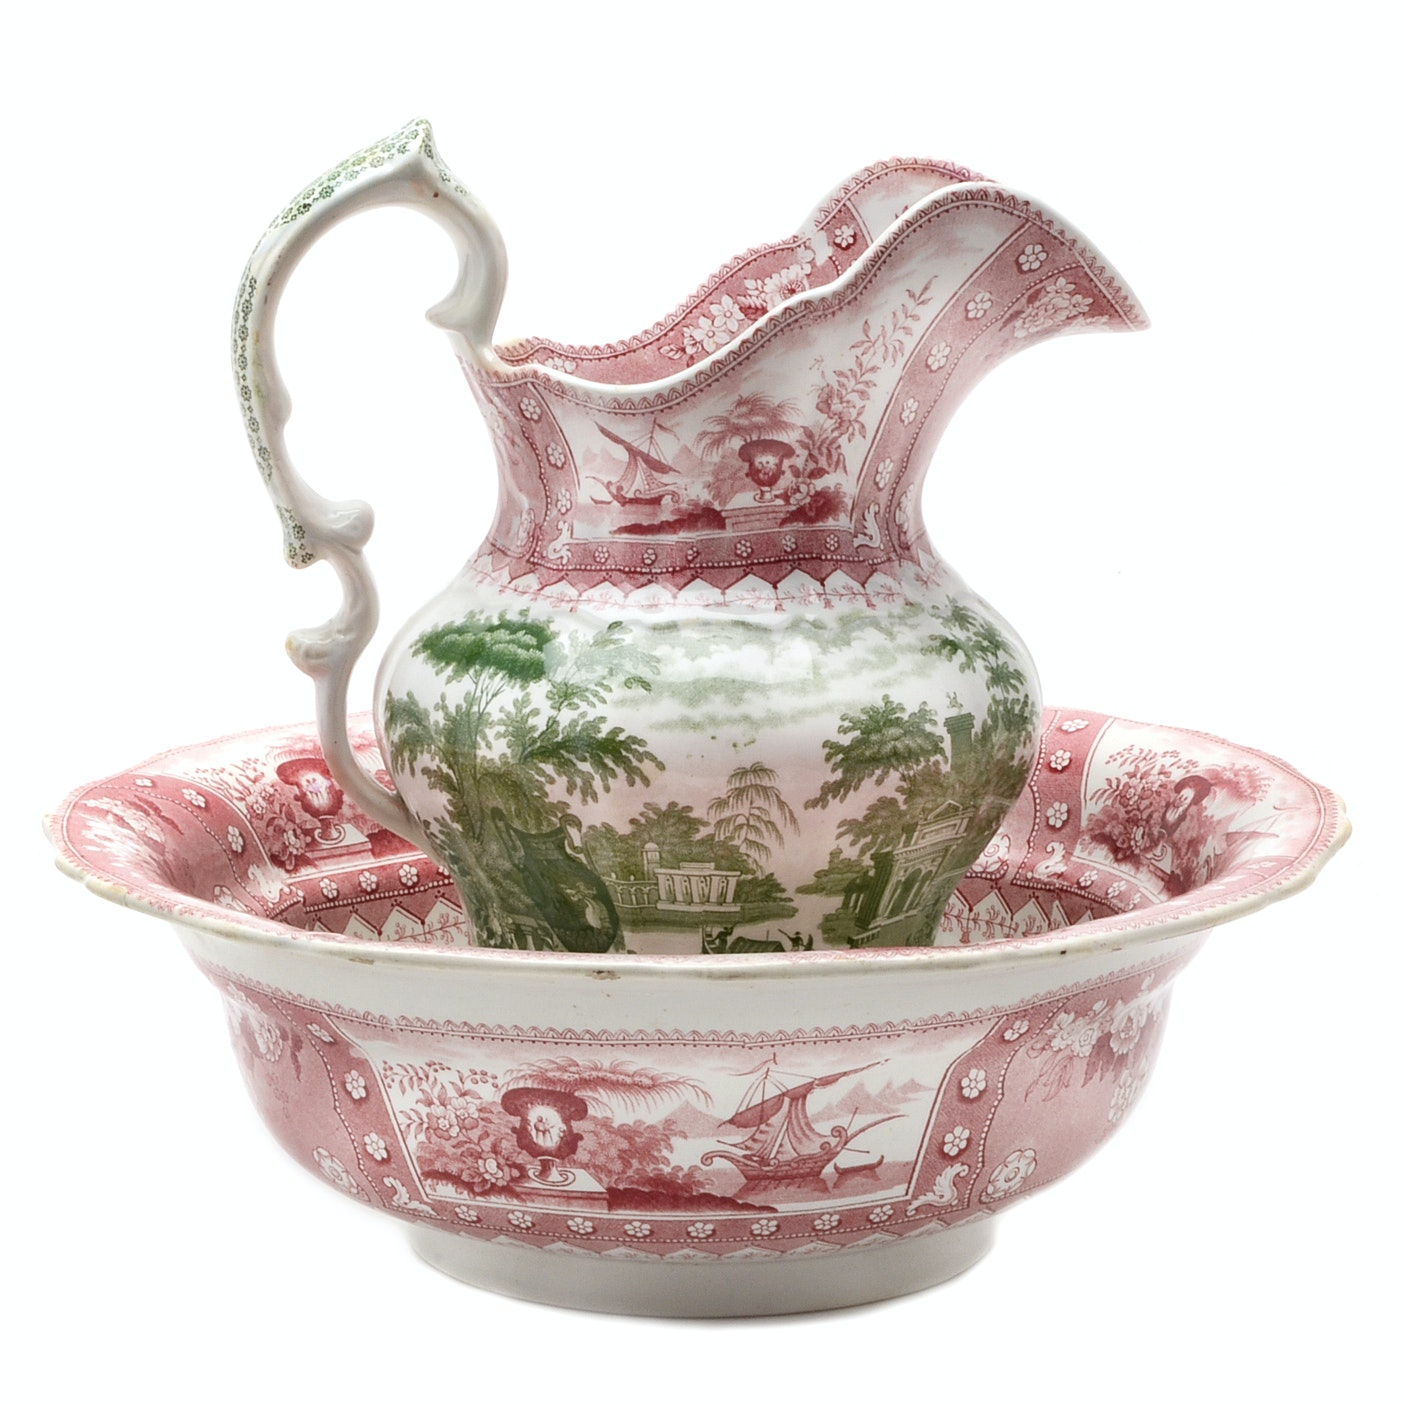 Antiques, Collectibles, Porcelain & More